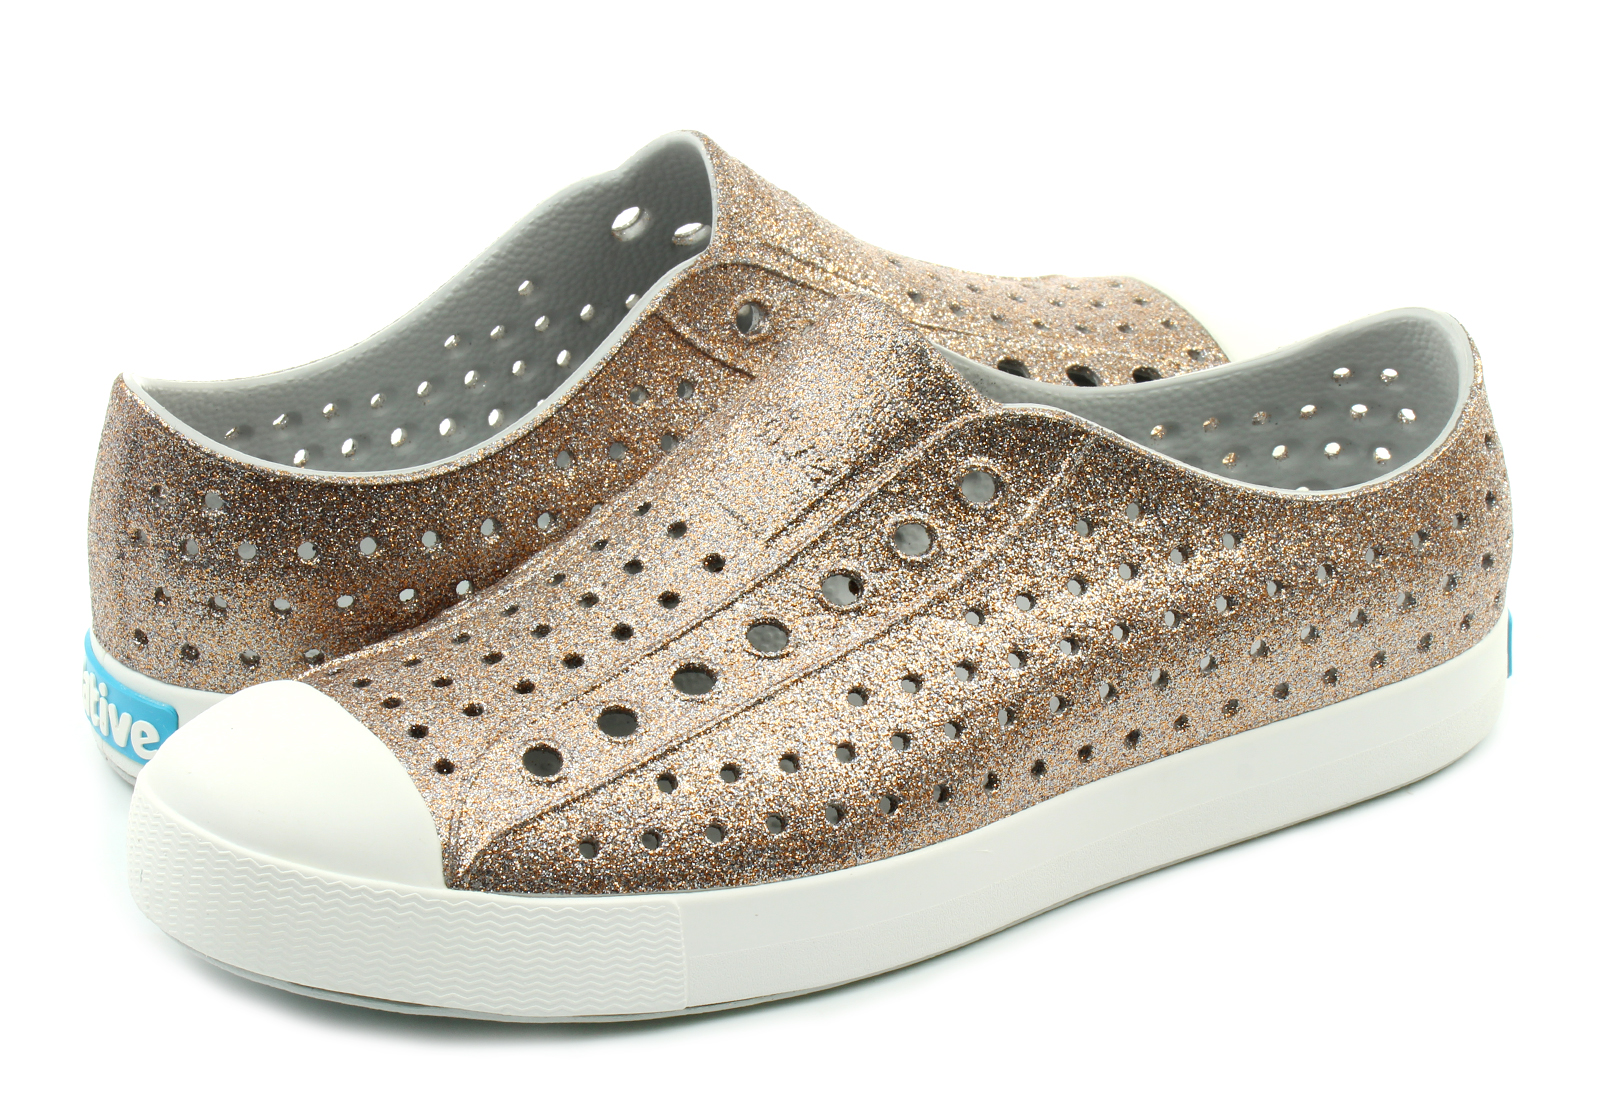 ef72b5ab4f89 Native Shoes - Jefferson Bling - 11100112-1241 - Online shop for ...